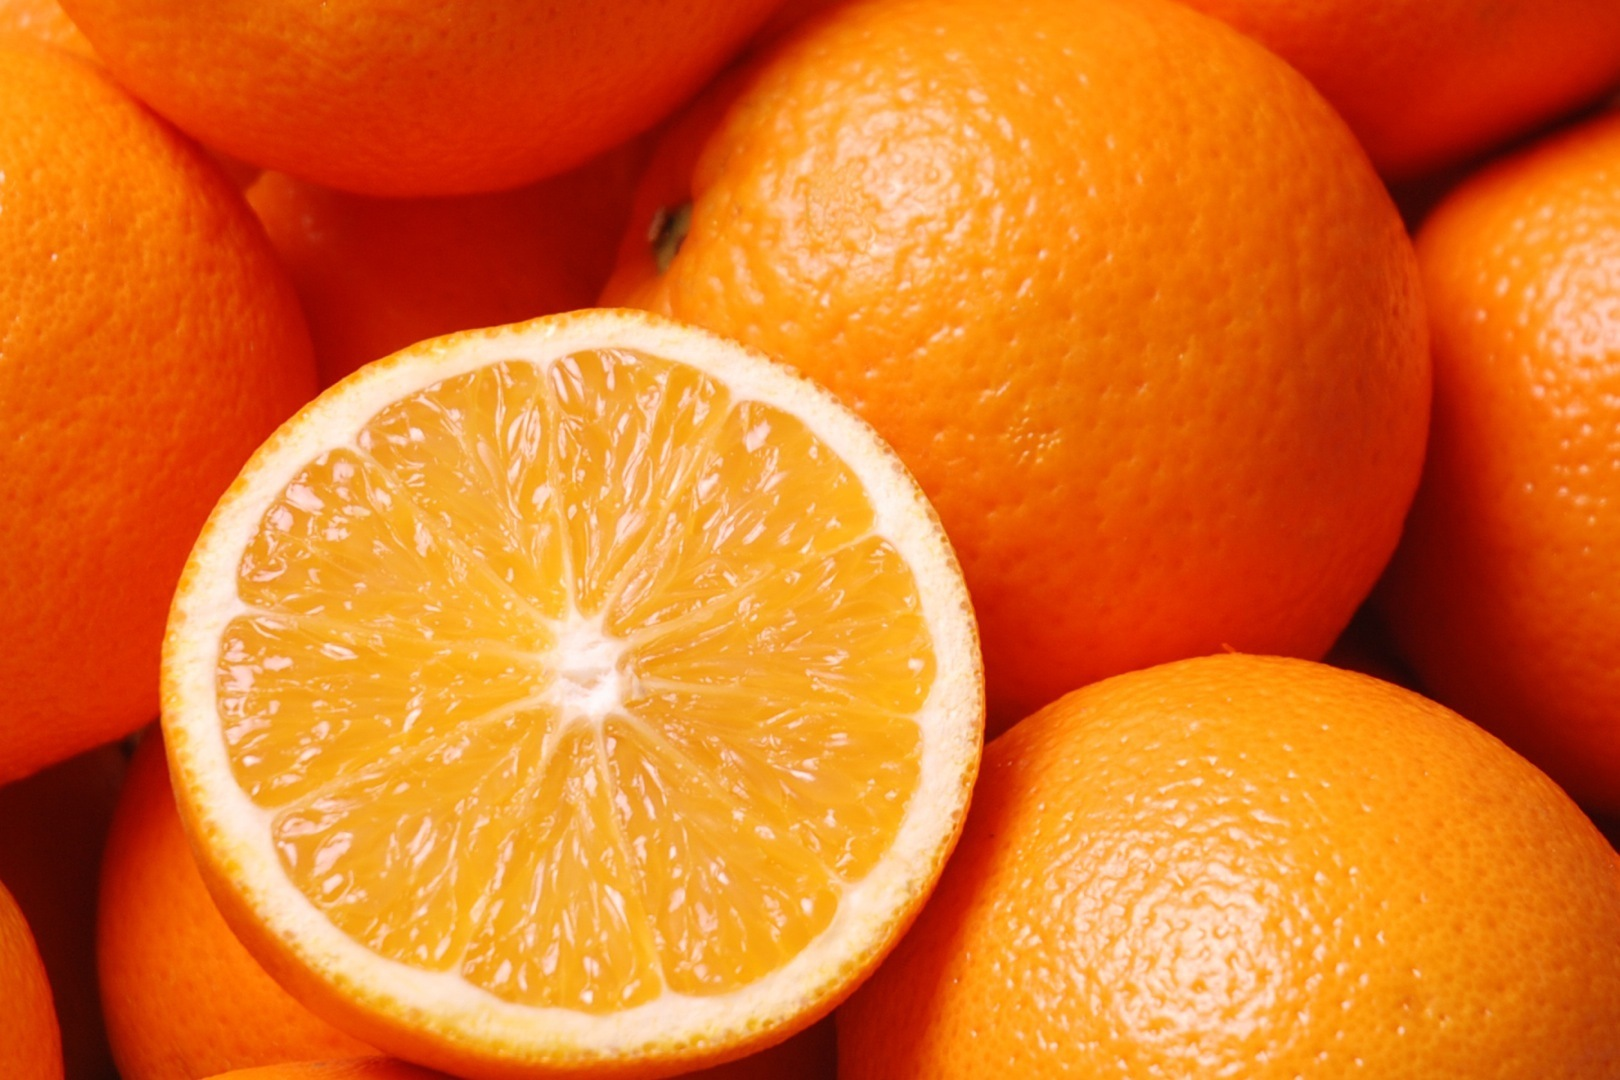 Orange images Orange Fruit HD wallpaper and background photos 1620x1080